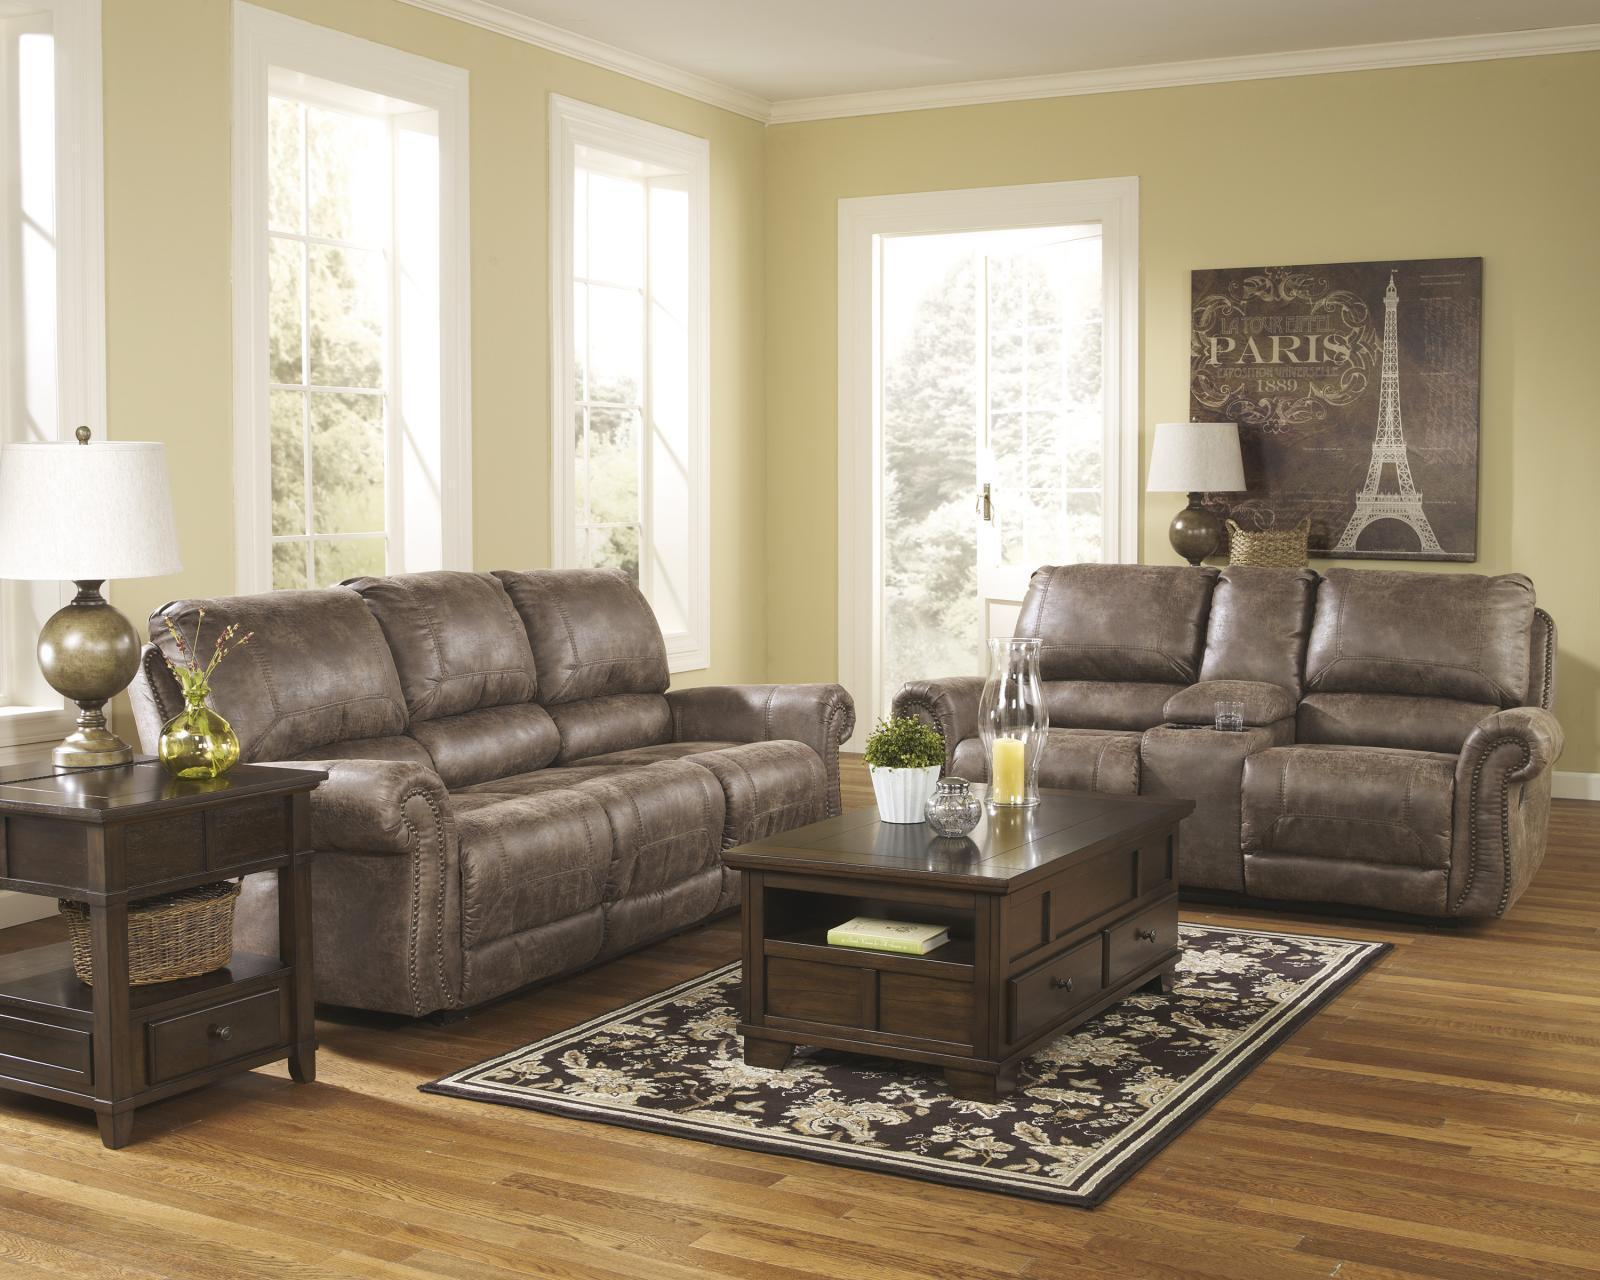 Ashley Oberson 2 Piece Living Room Set in Gunsmoke with Power Contemporary Style